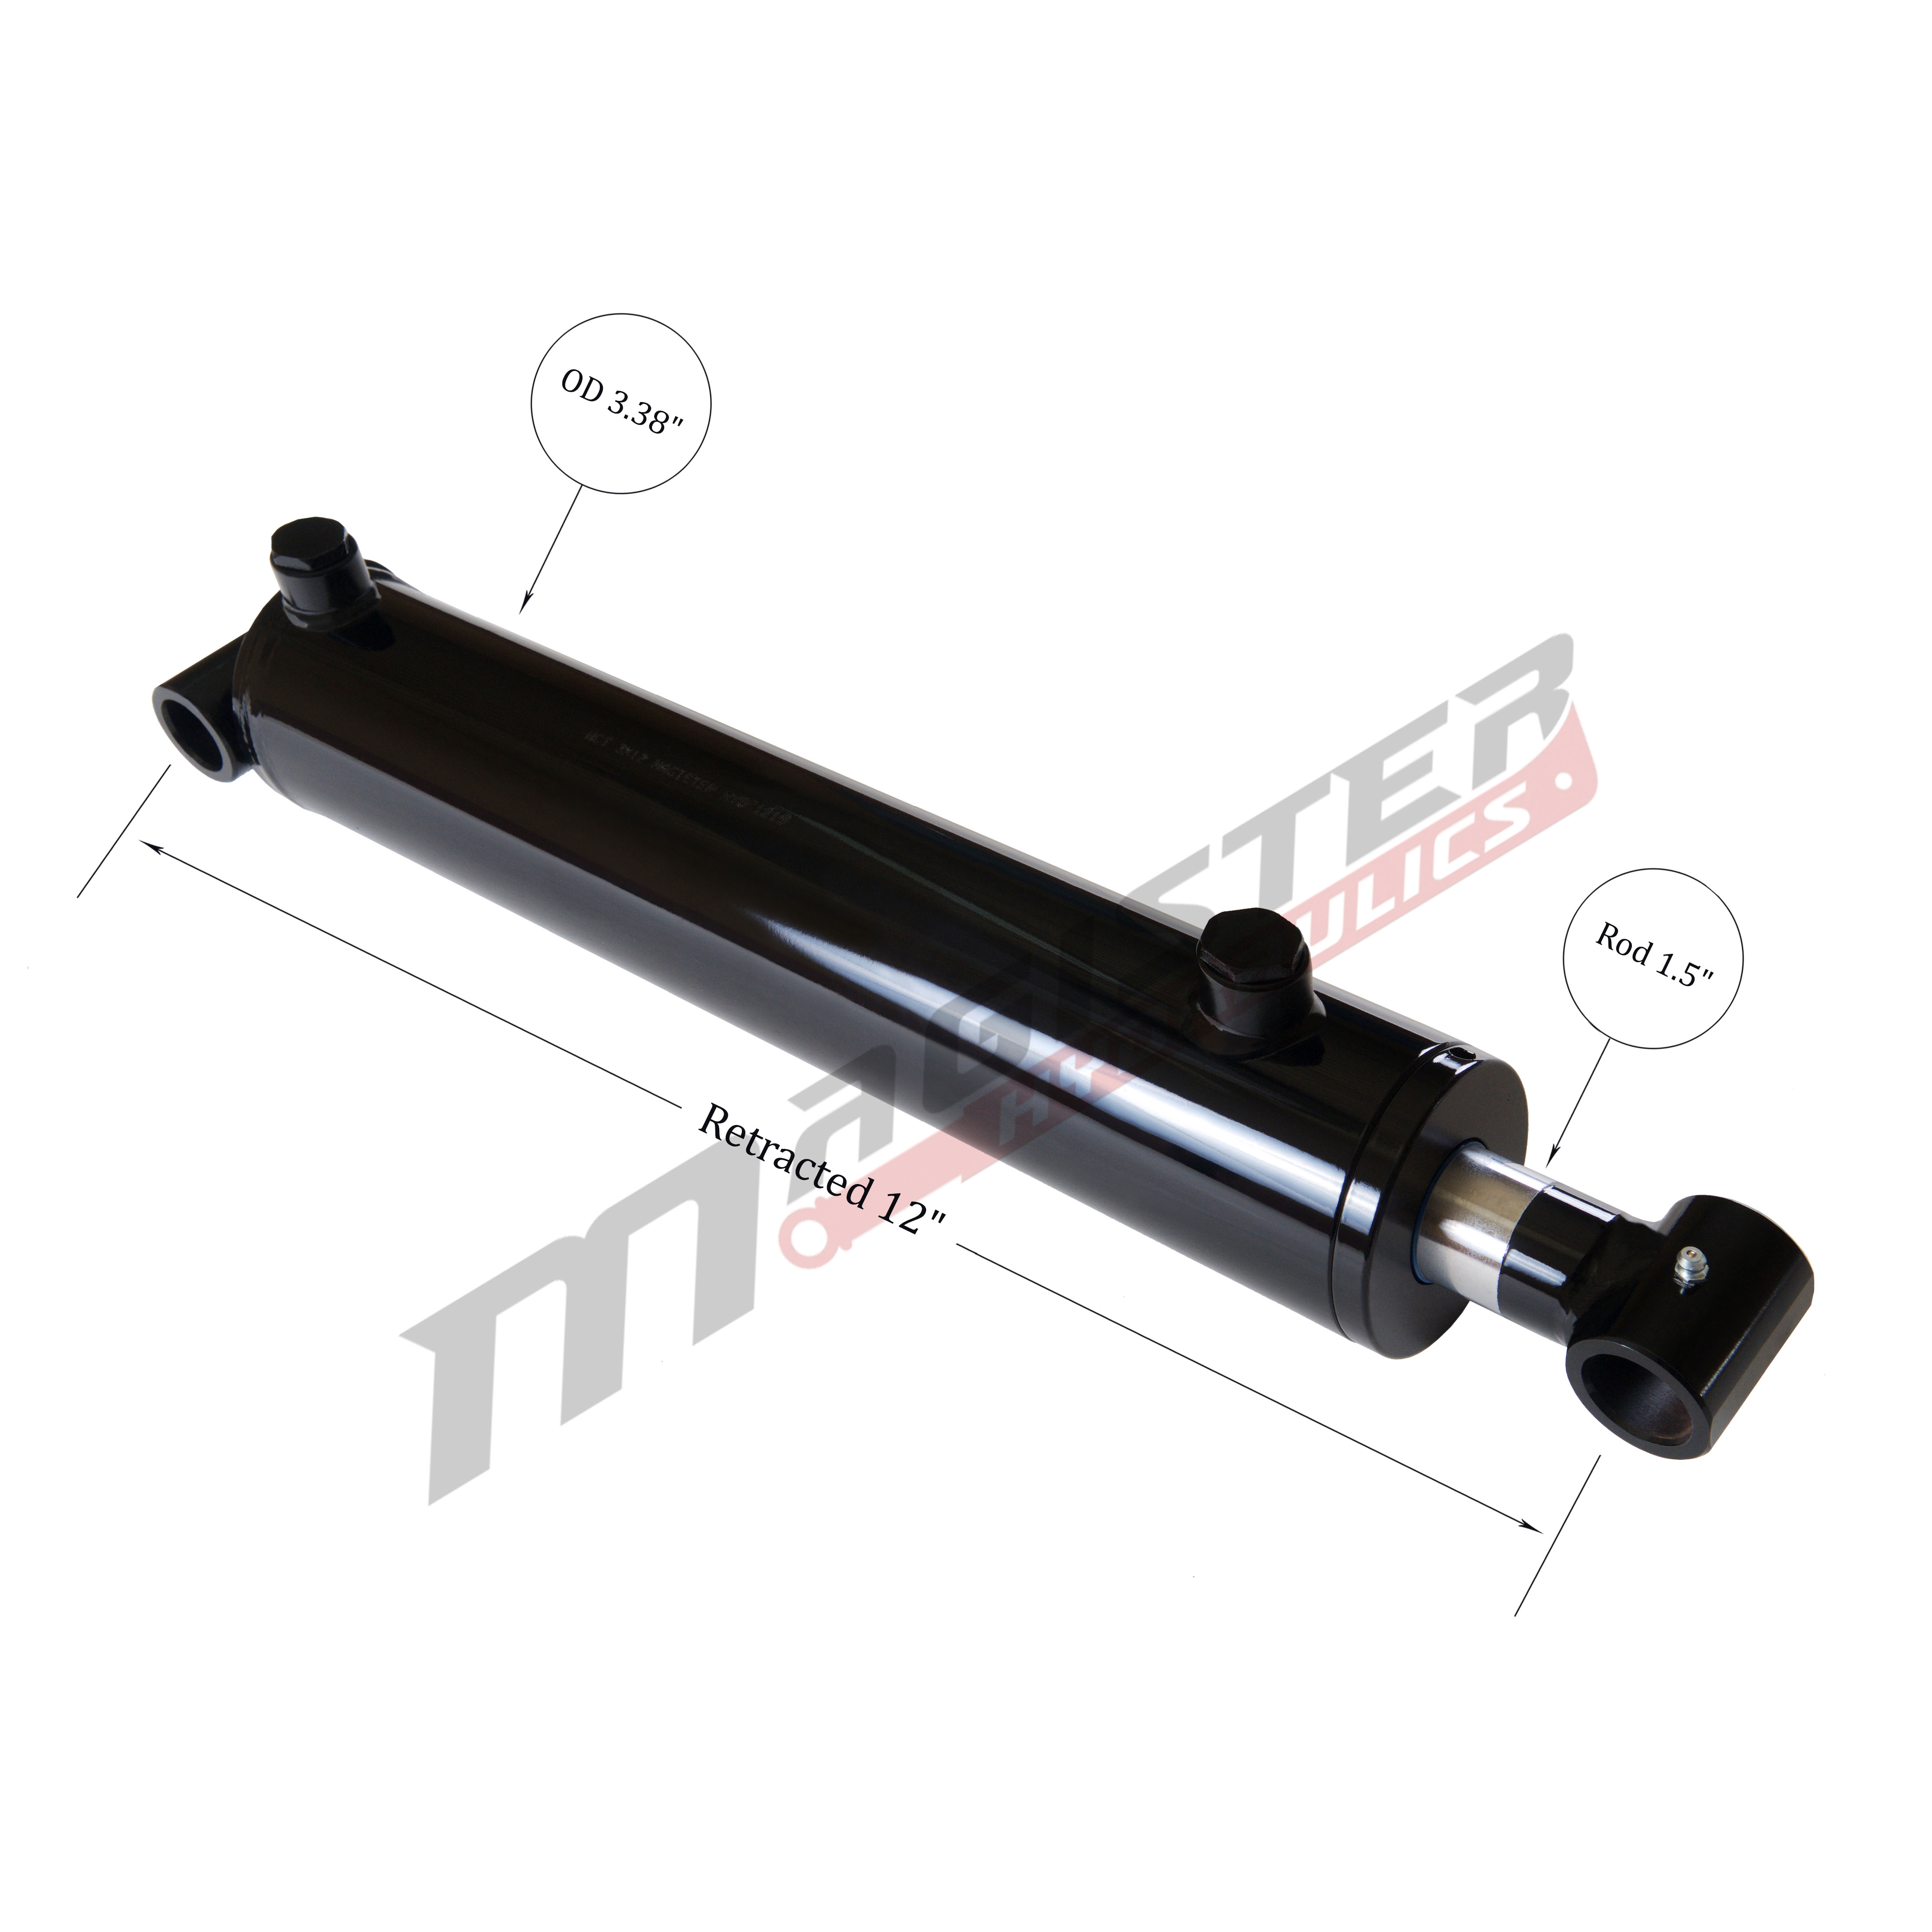 3 bore x 4 stroke hydraulic cylinder, welded cross tube double acting cylinder | Magister Hydraulics